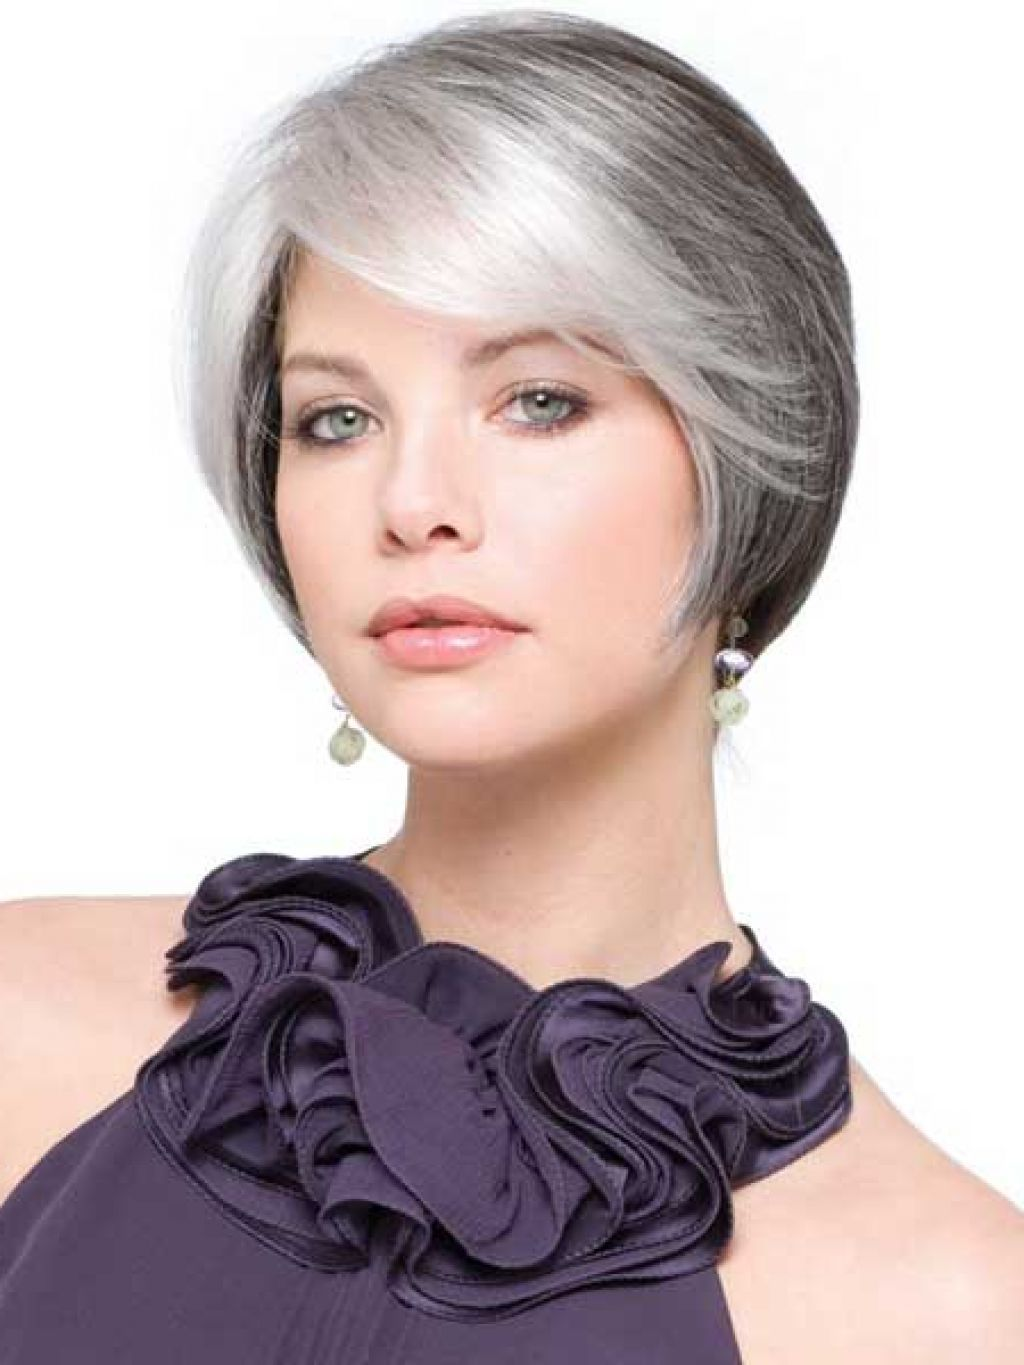 Short womens hairstyles for gray hair - Short Hairstyles For Older Women With Gray Hair